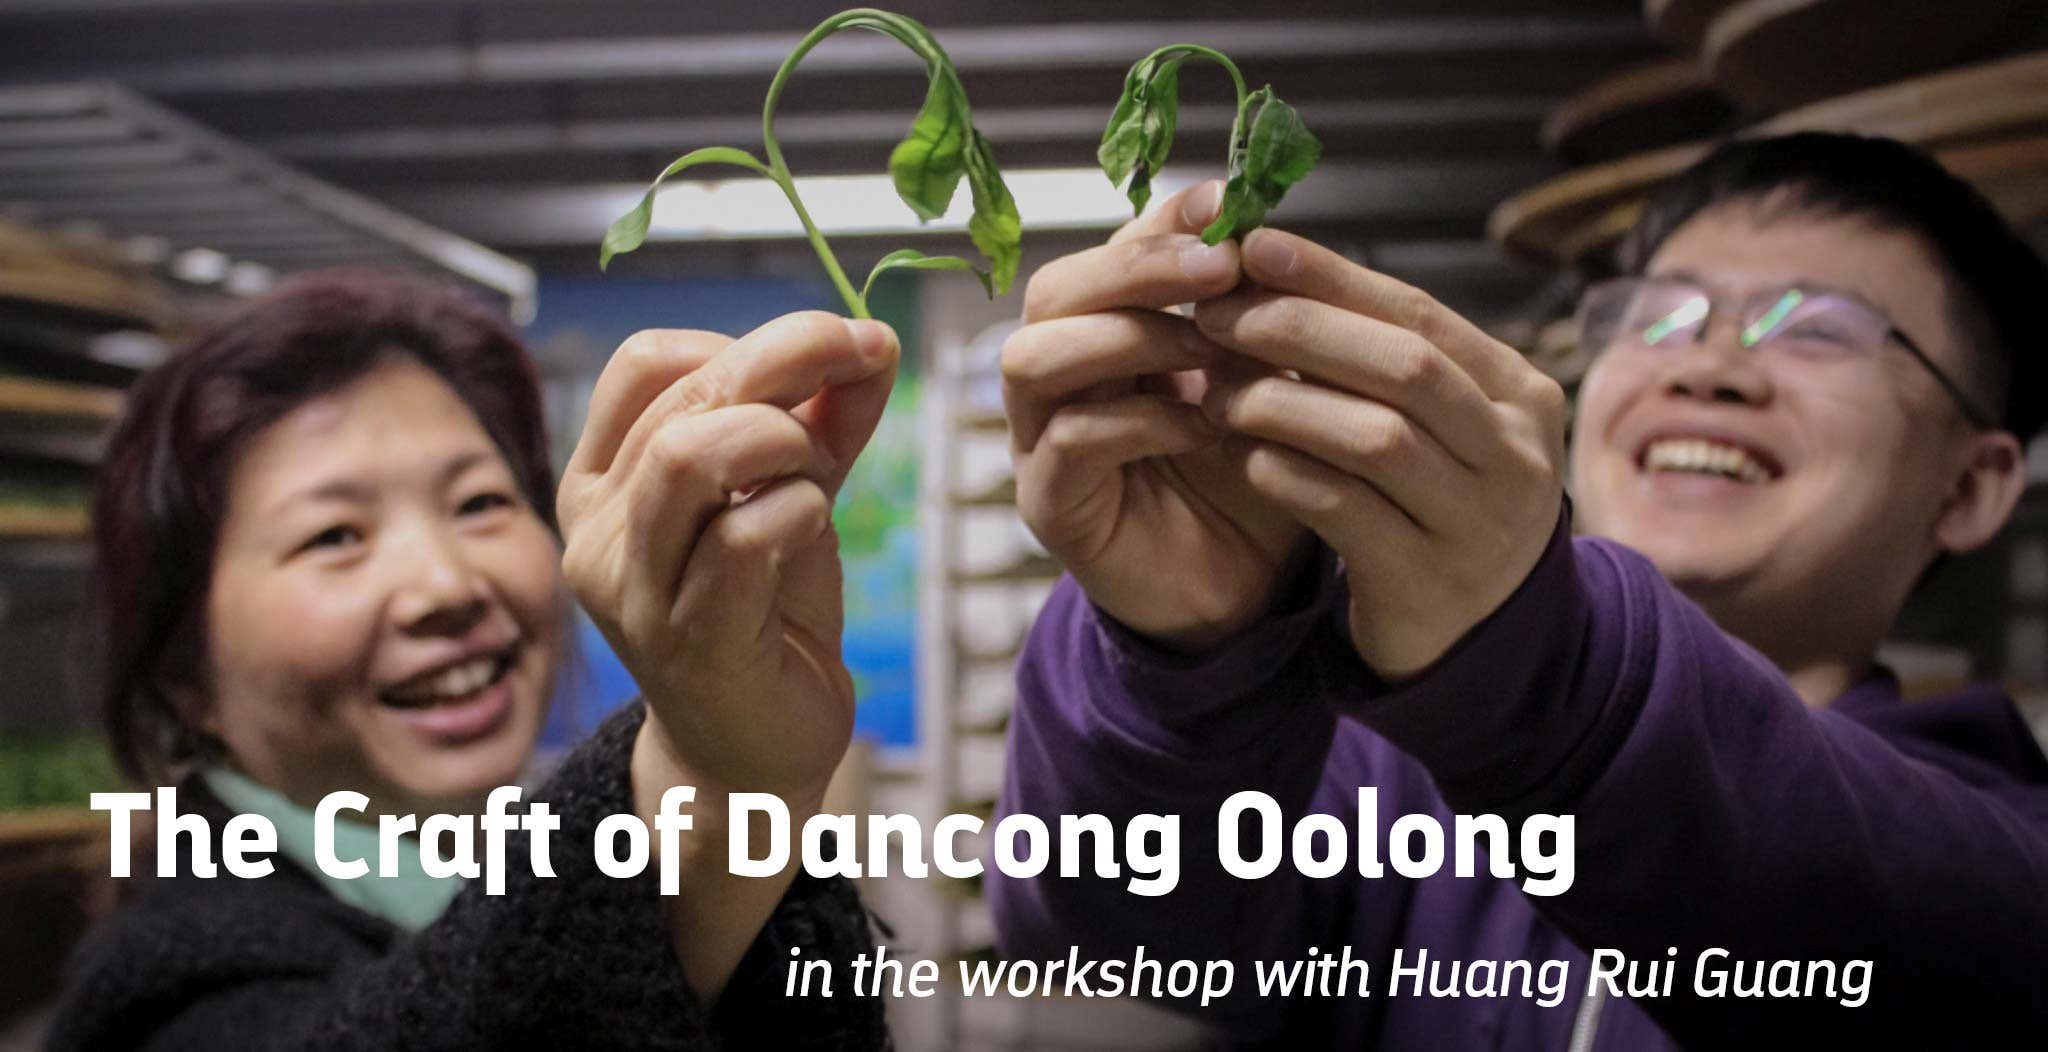 The Craft of Dancong Oolong